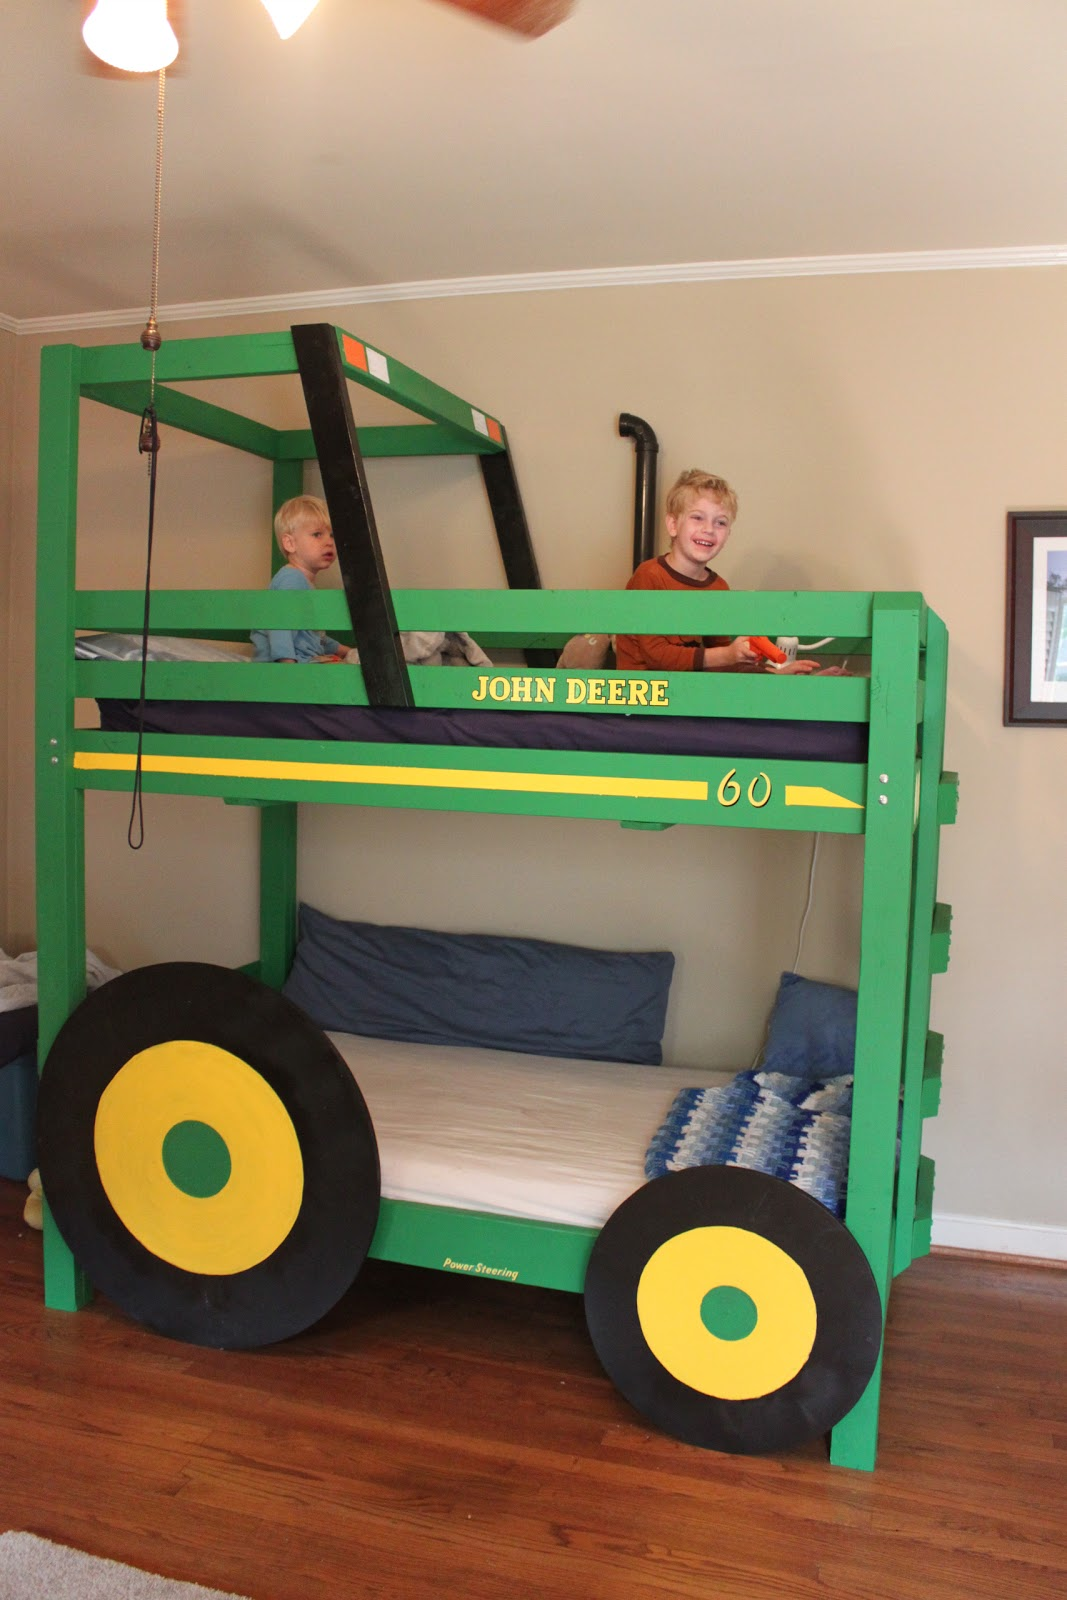 John Deere Tractor Playhouse Plans : Download john deere tractor bunk bed plans pdf kids